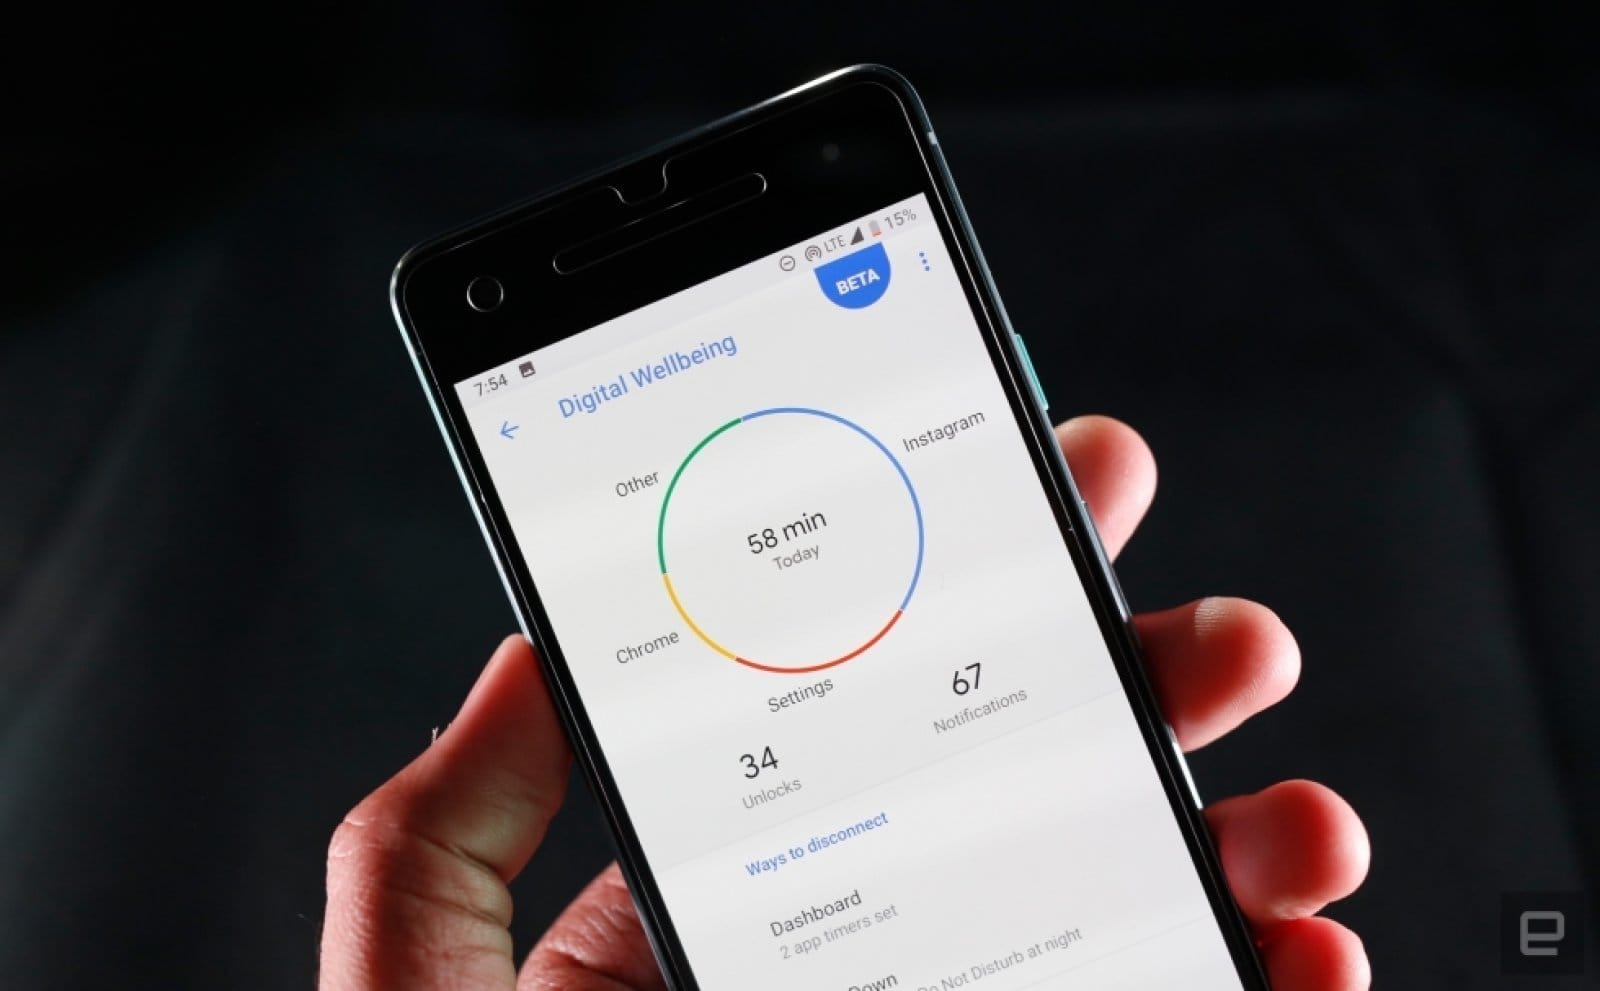 Android Digital Wellbeing